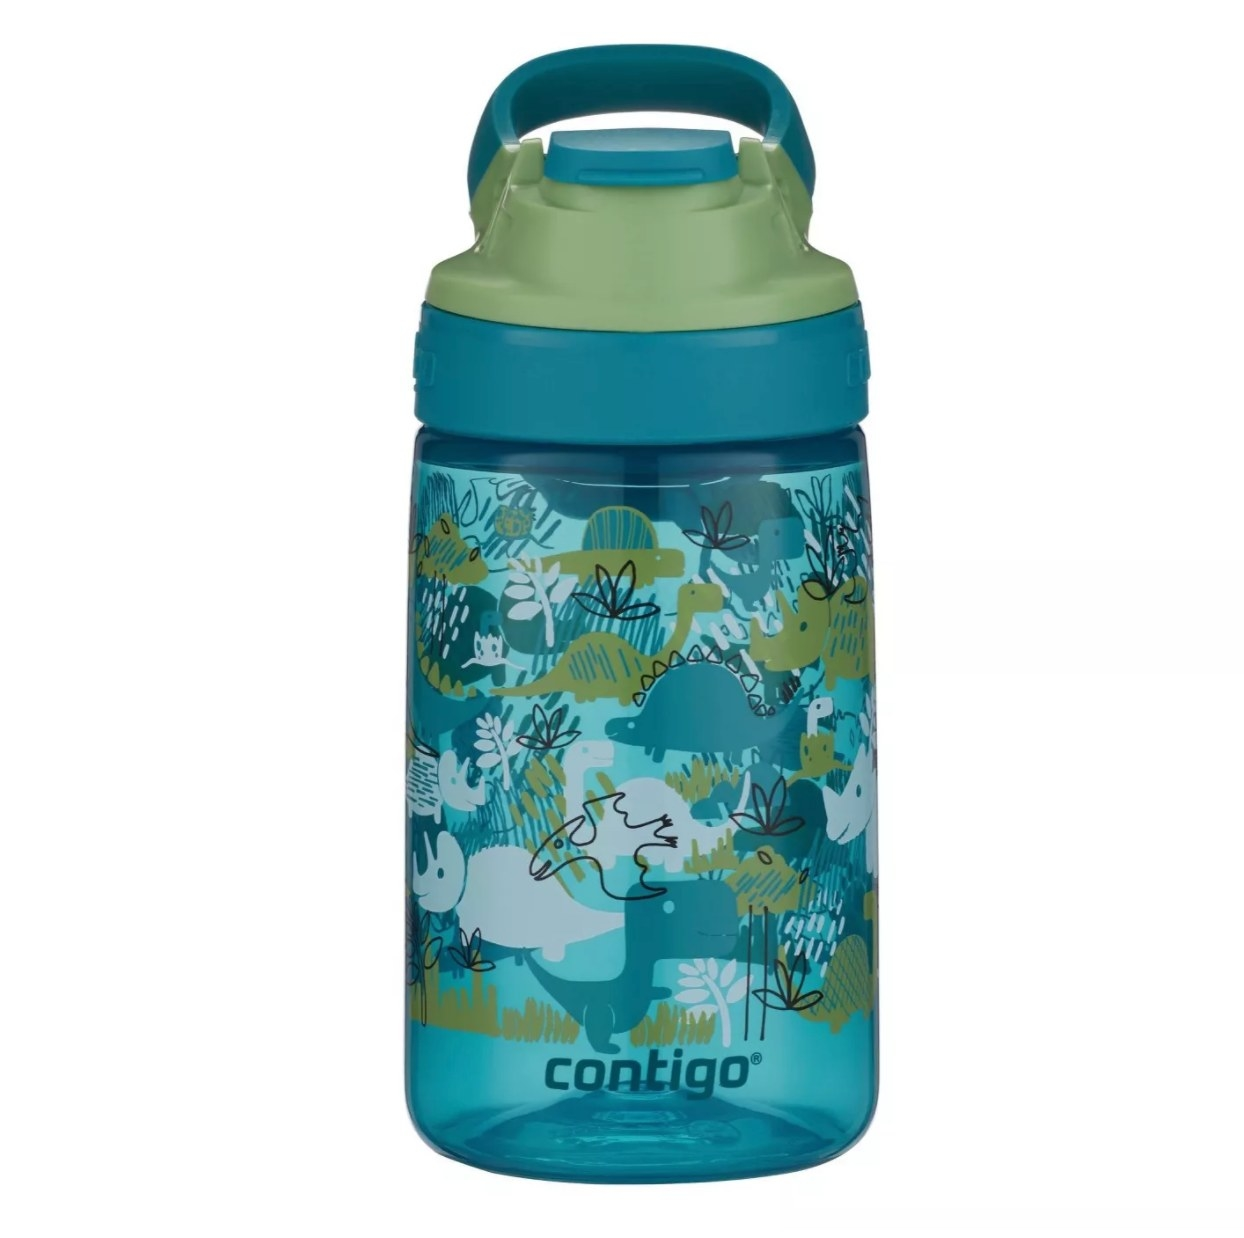 The kids water bottle in blue and green with dinosaurs on it